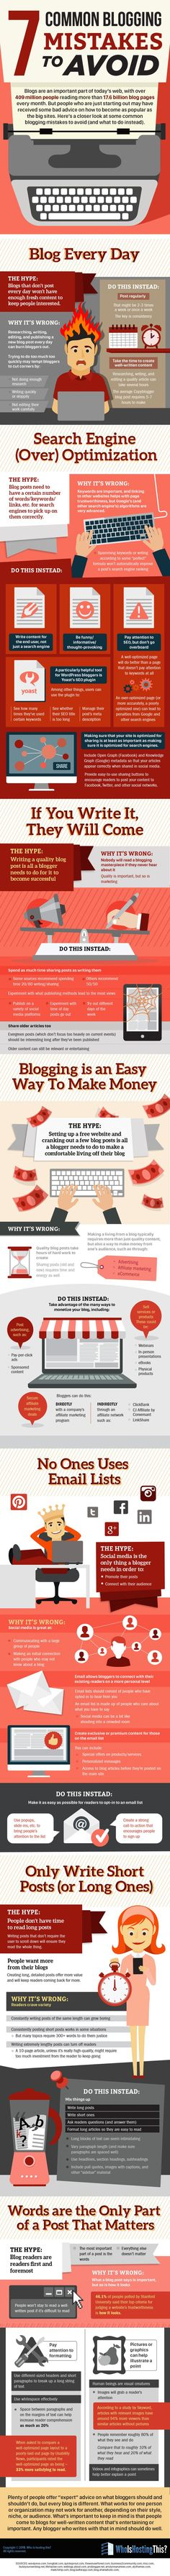 7 Common Blogging Mistakes to Avoid [by WhoIsHostingThis -- via #tipsographic]…